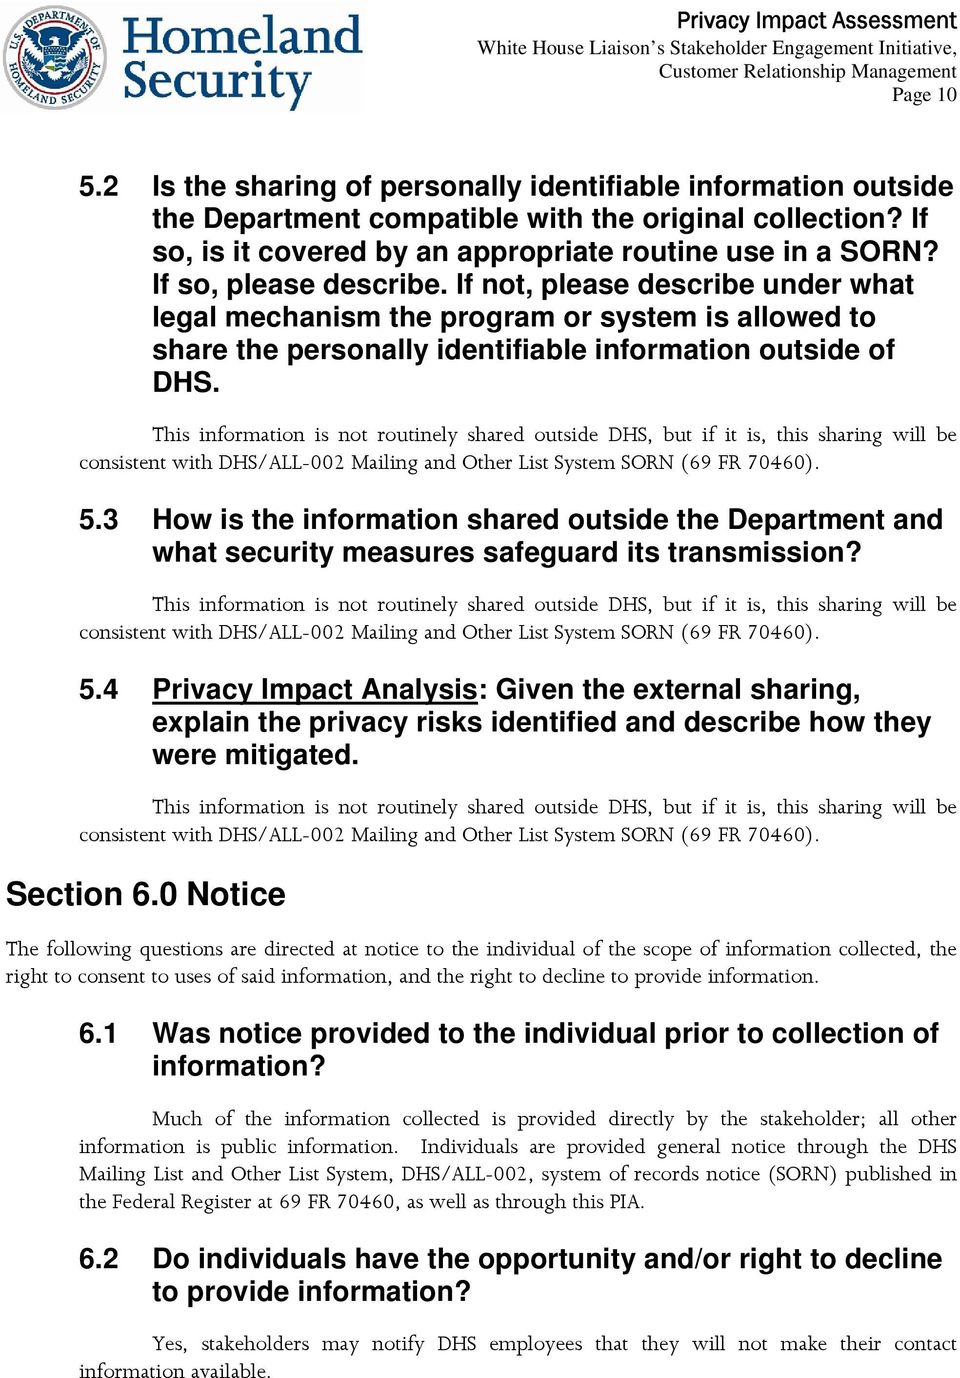 This information is not routinely shared outside DHS, but if it is, this sharing will be consistent with DHS/ALL-002 Mailing and Other List System SORN (69 FR 70460). 5.